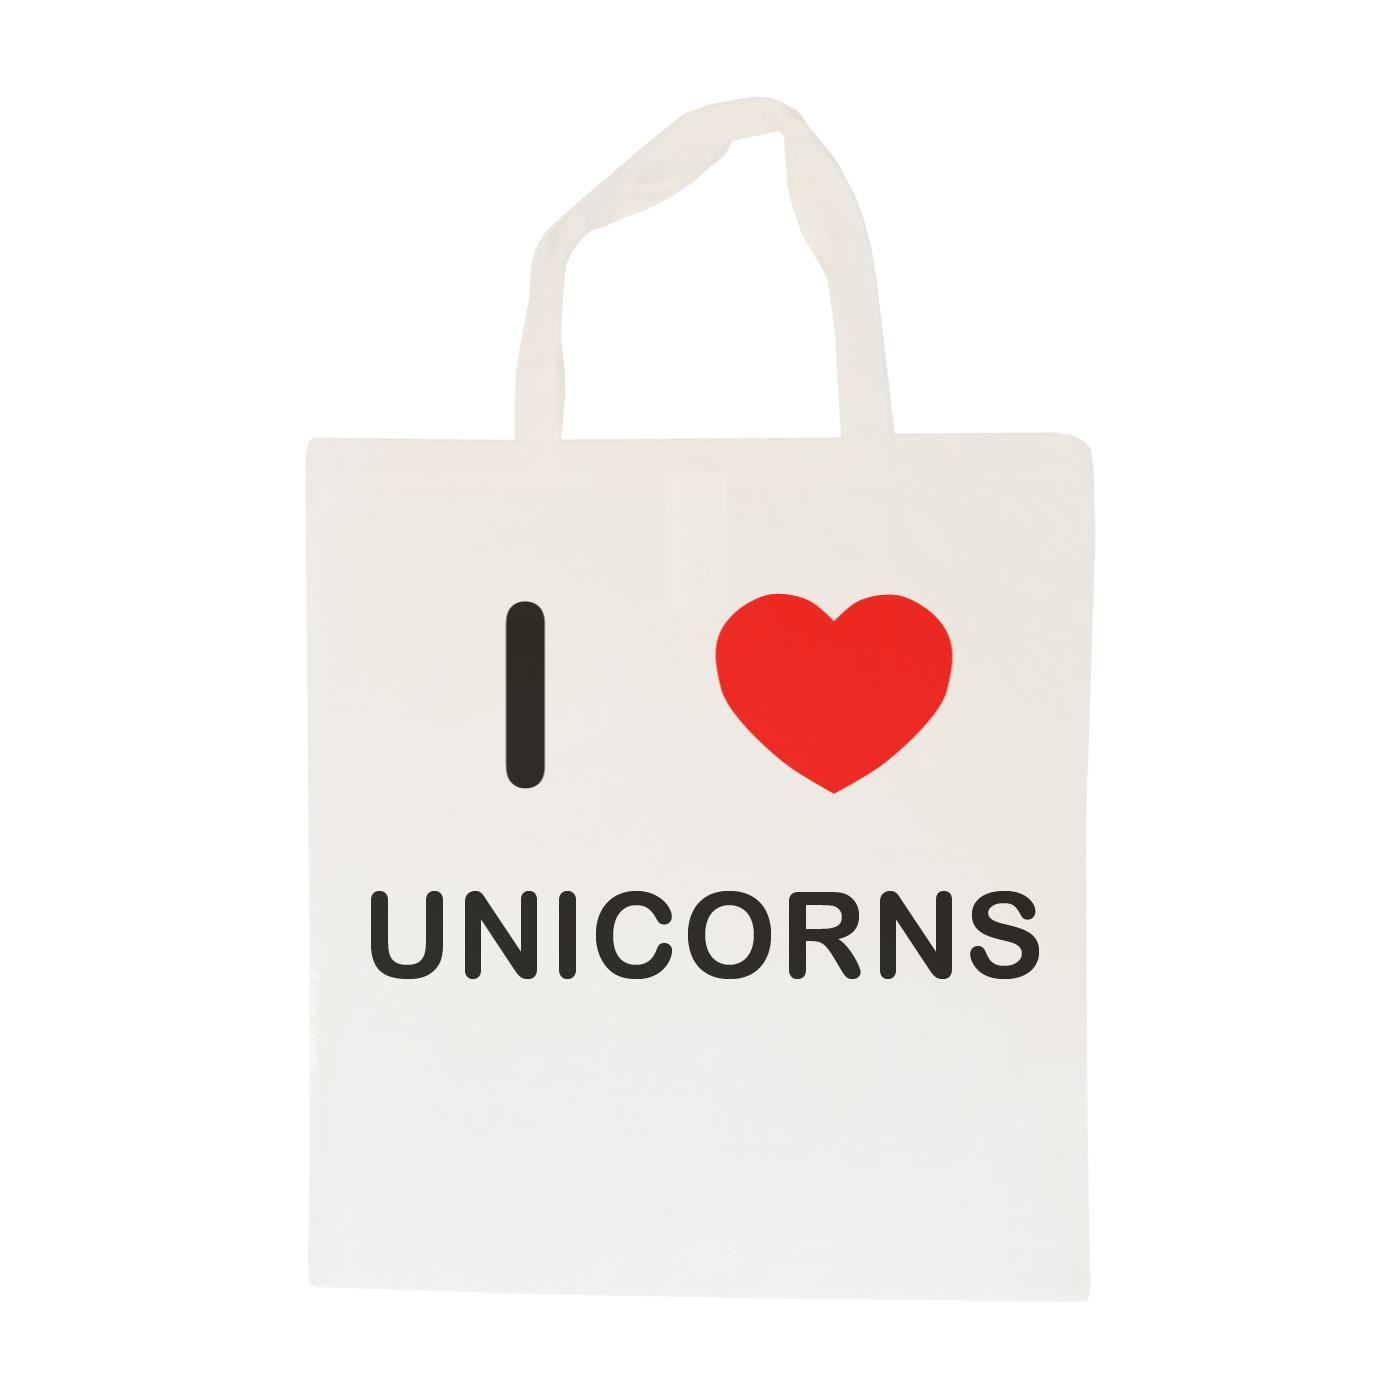 I Love Unicorns - Cotton Bag | Size choice Tote, Shopper or Sling